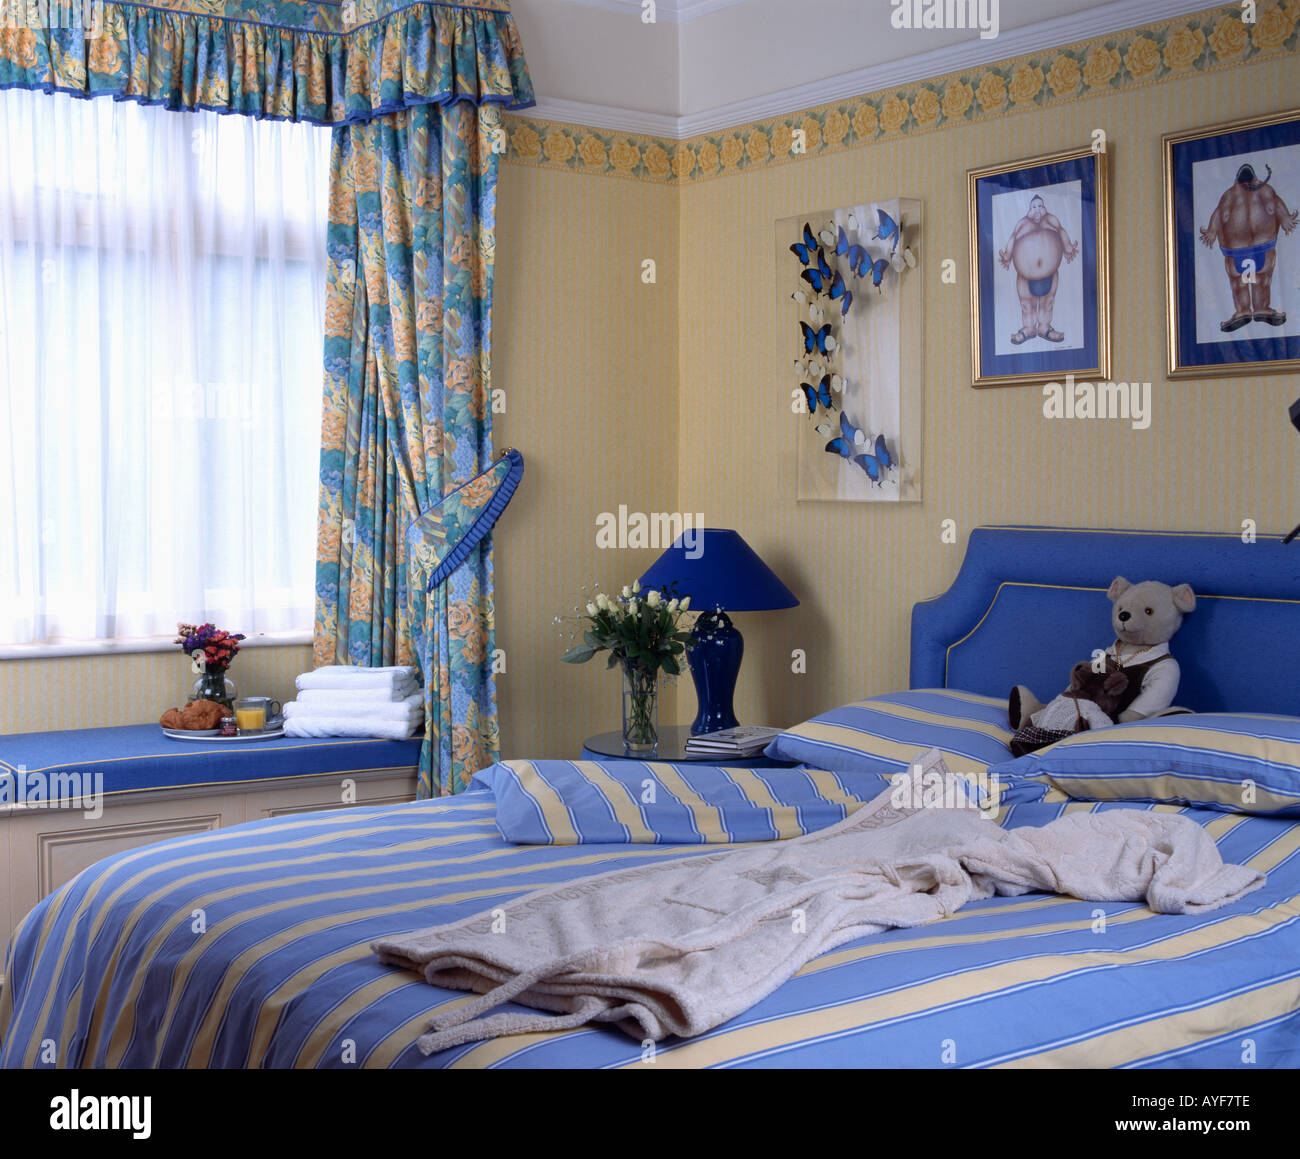 Blue patterned curtains and striped bed linen in yellow bedroom